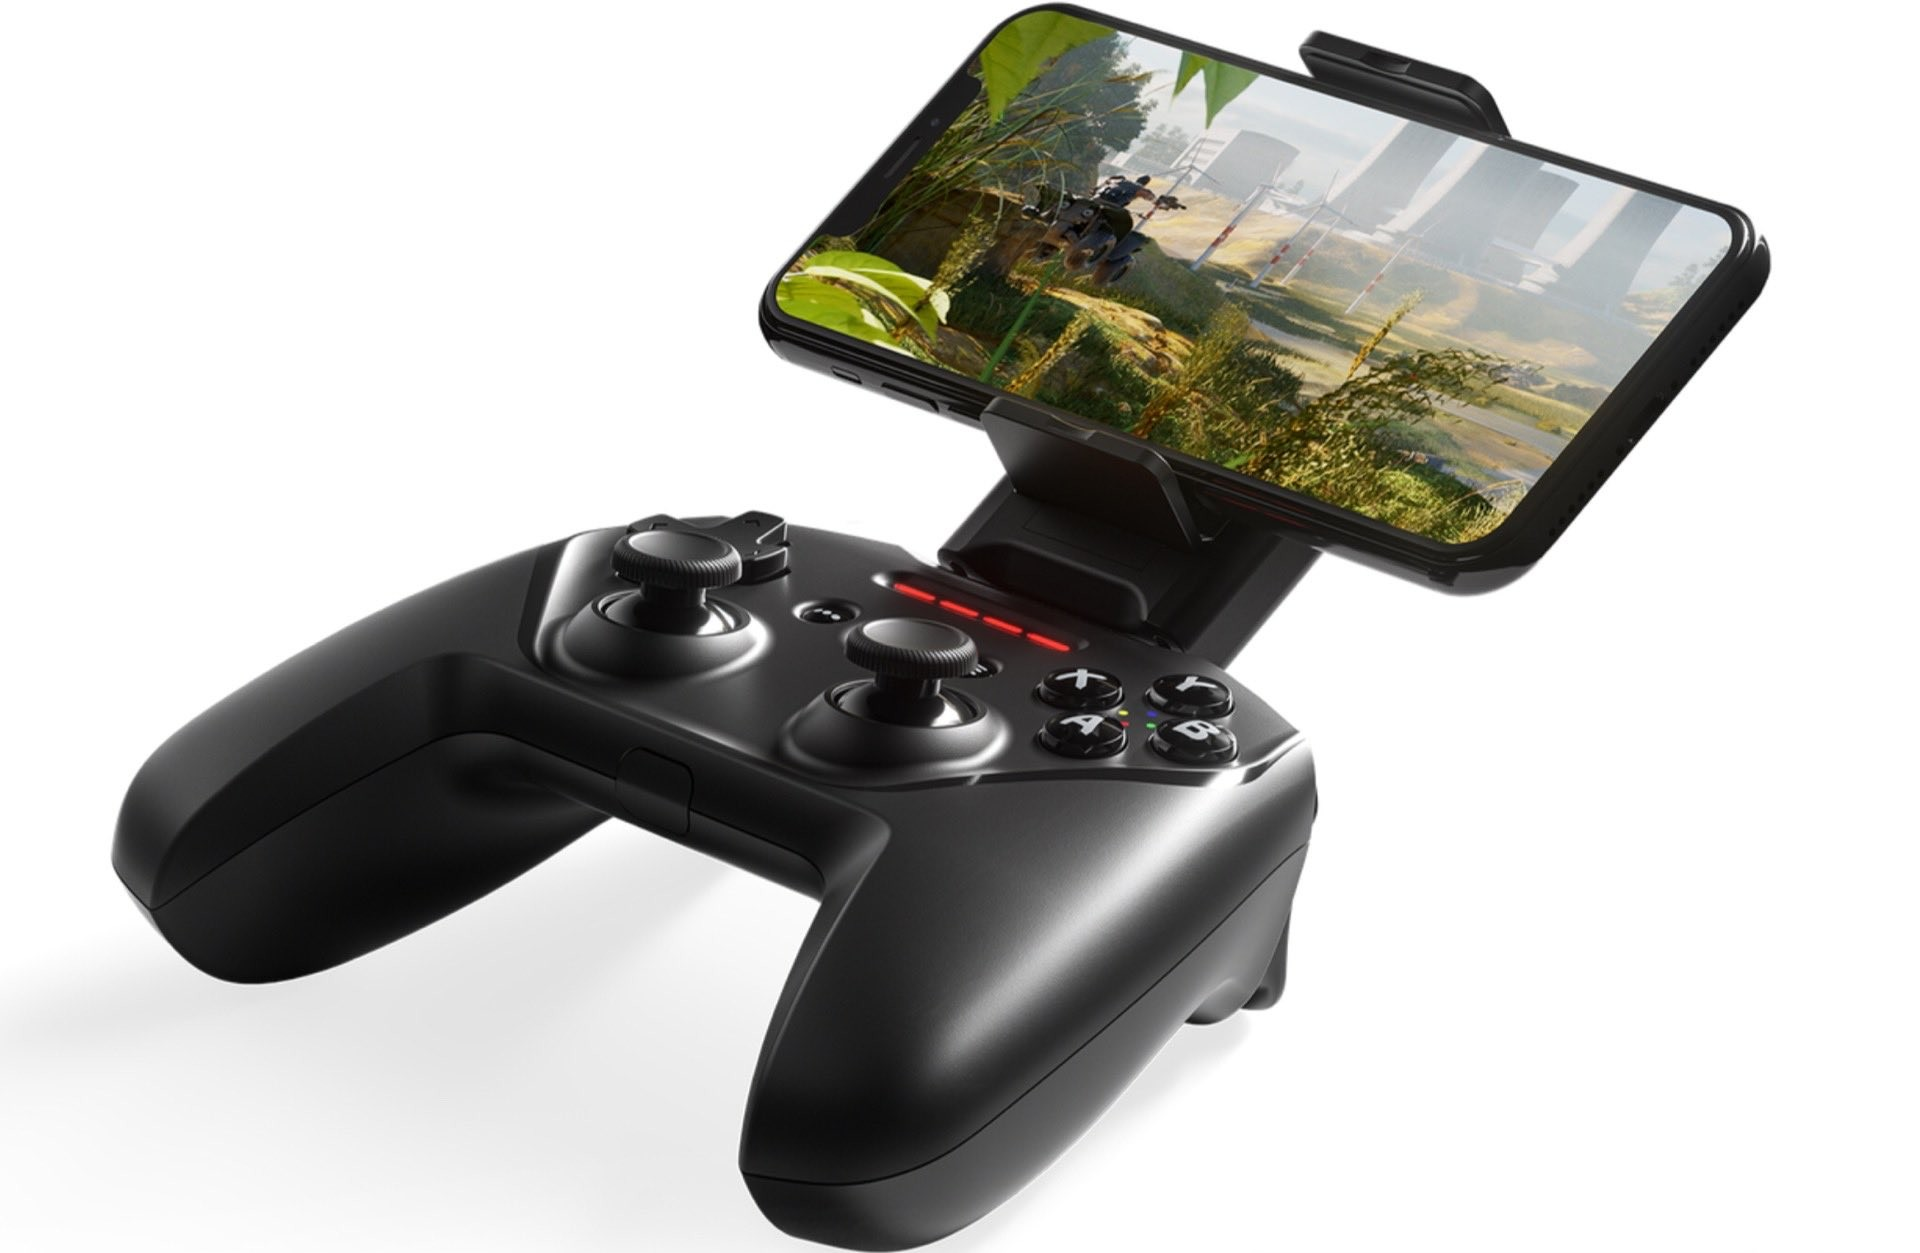 steelseries-nimbus-plus-game-controller-iphone-mount